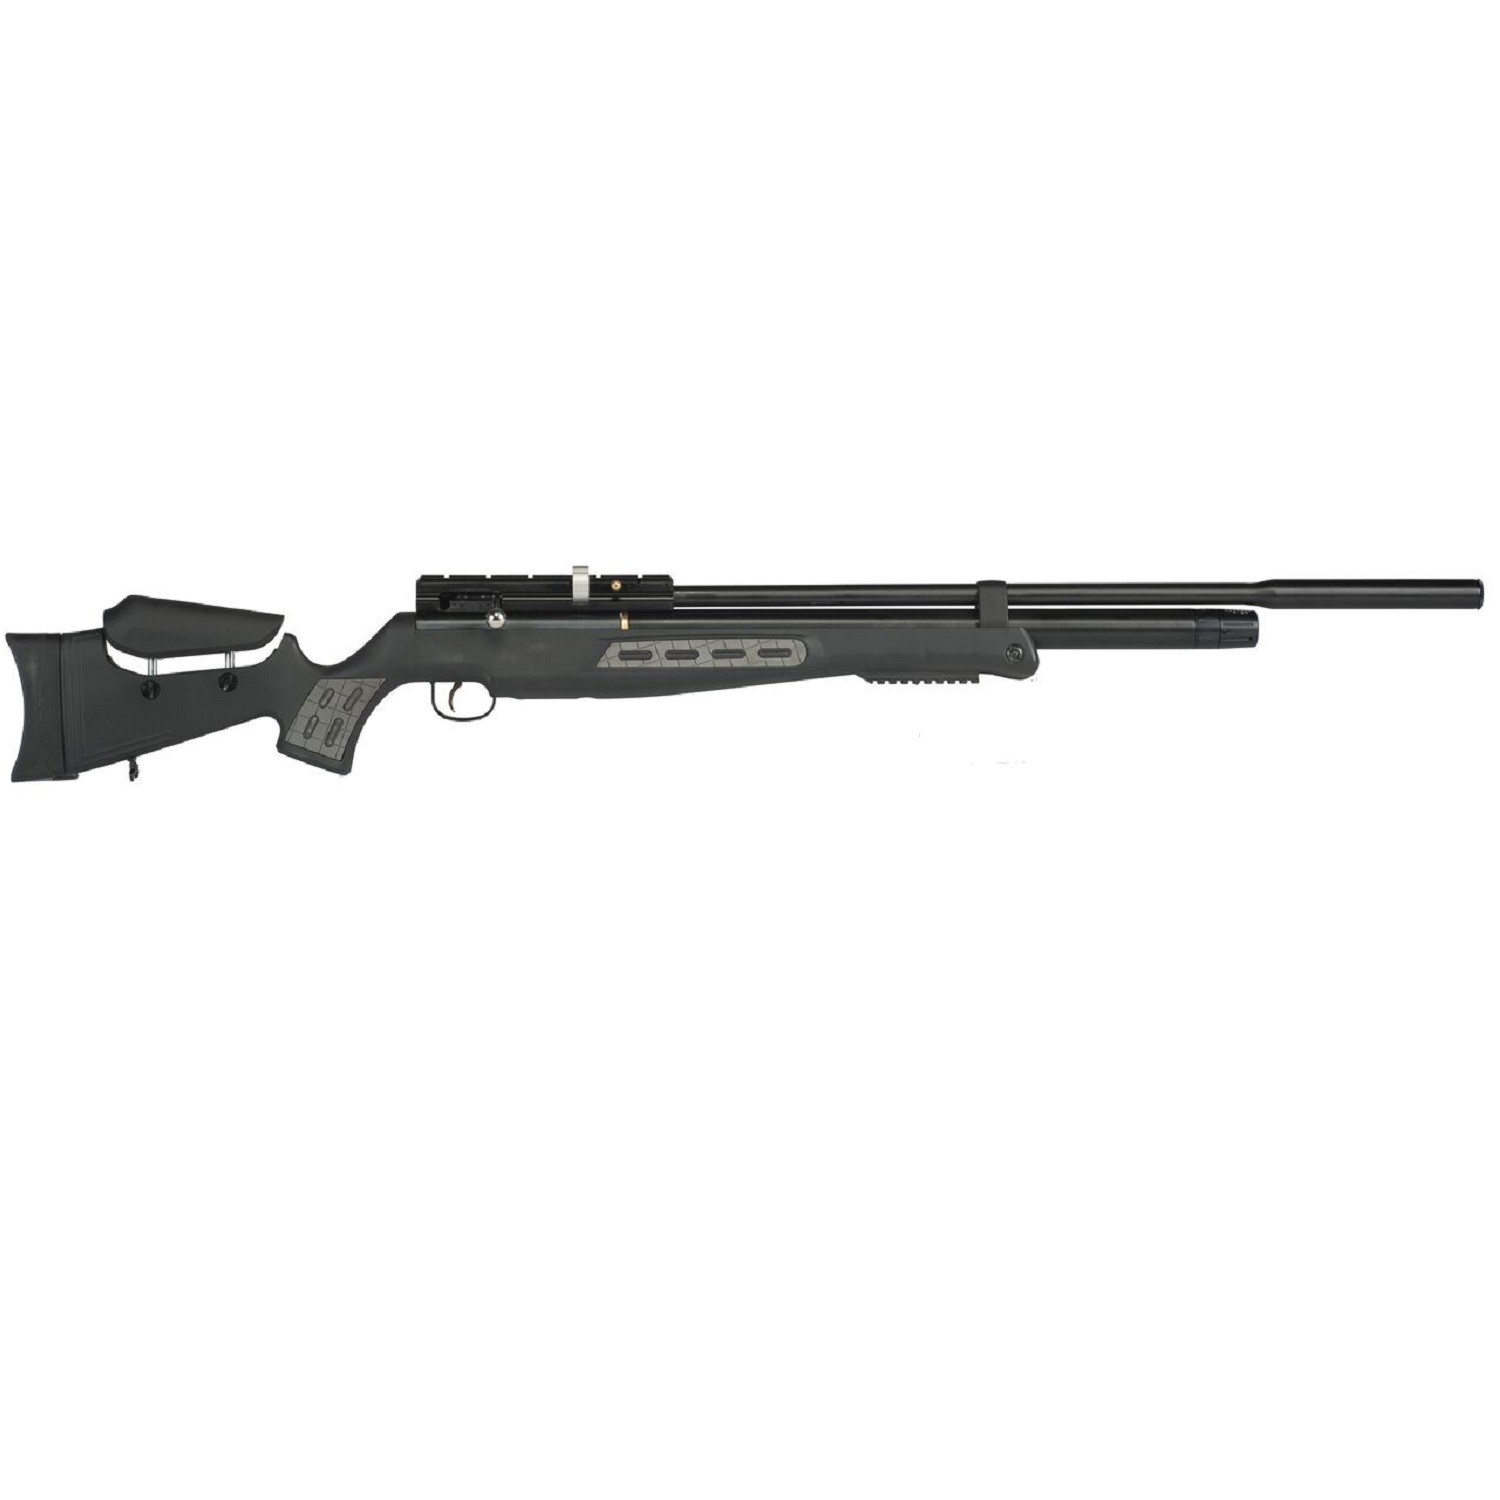 Hatsan BT65 Big Bore Carnivore 30 Caliber QE Air Rifle